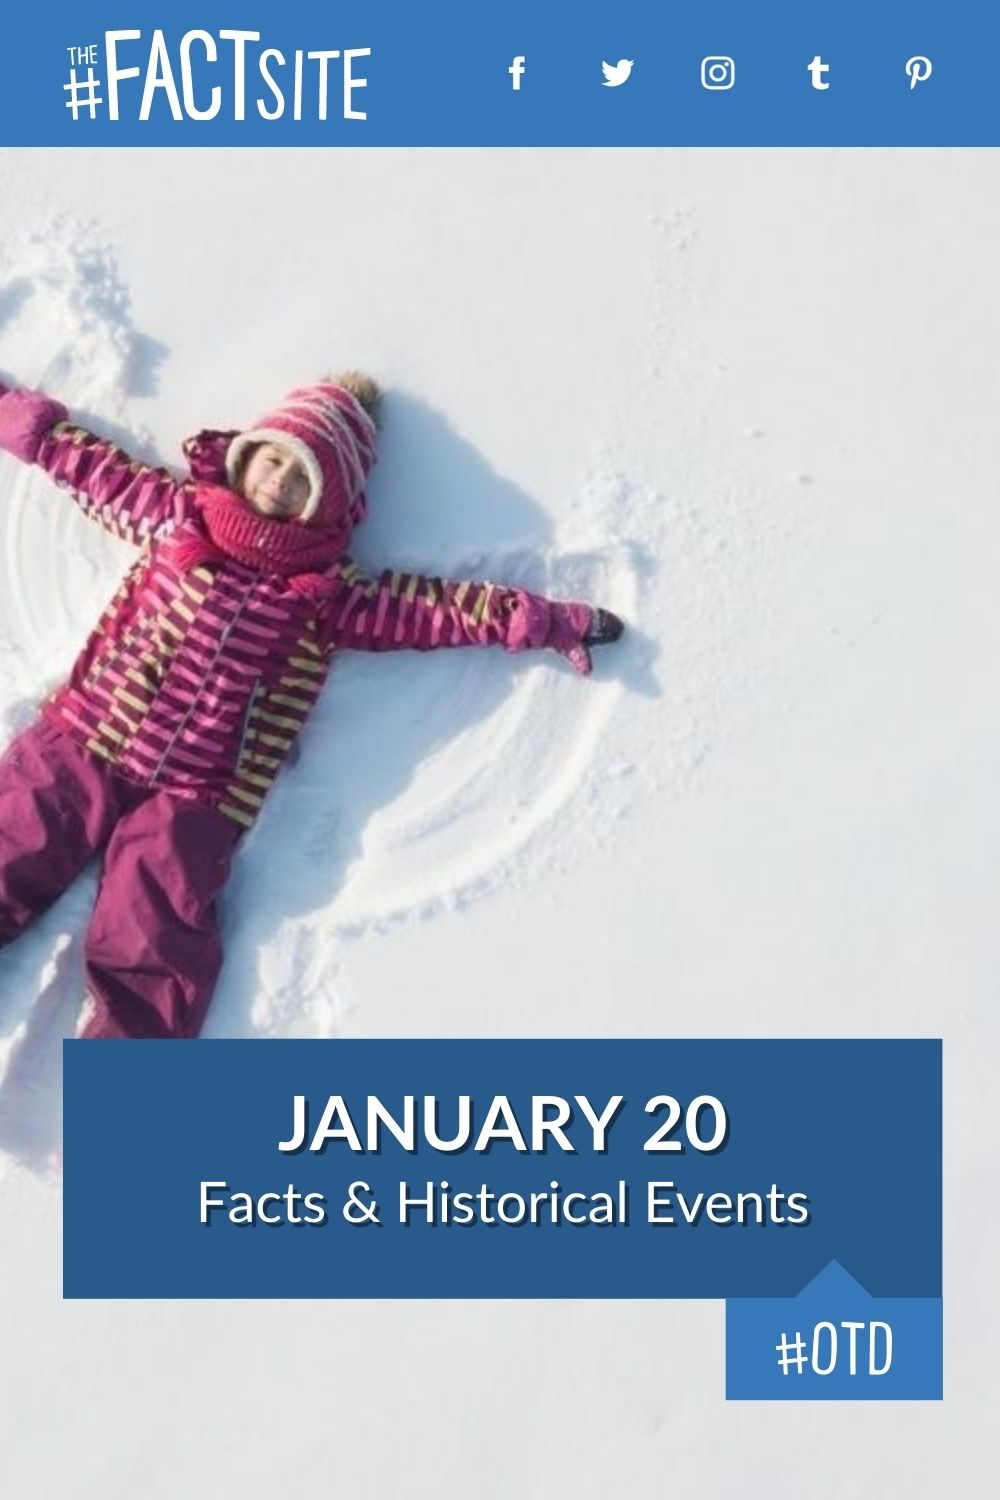 Facts & Historic Events That Happened on January 20